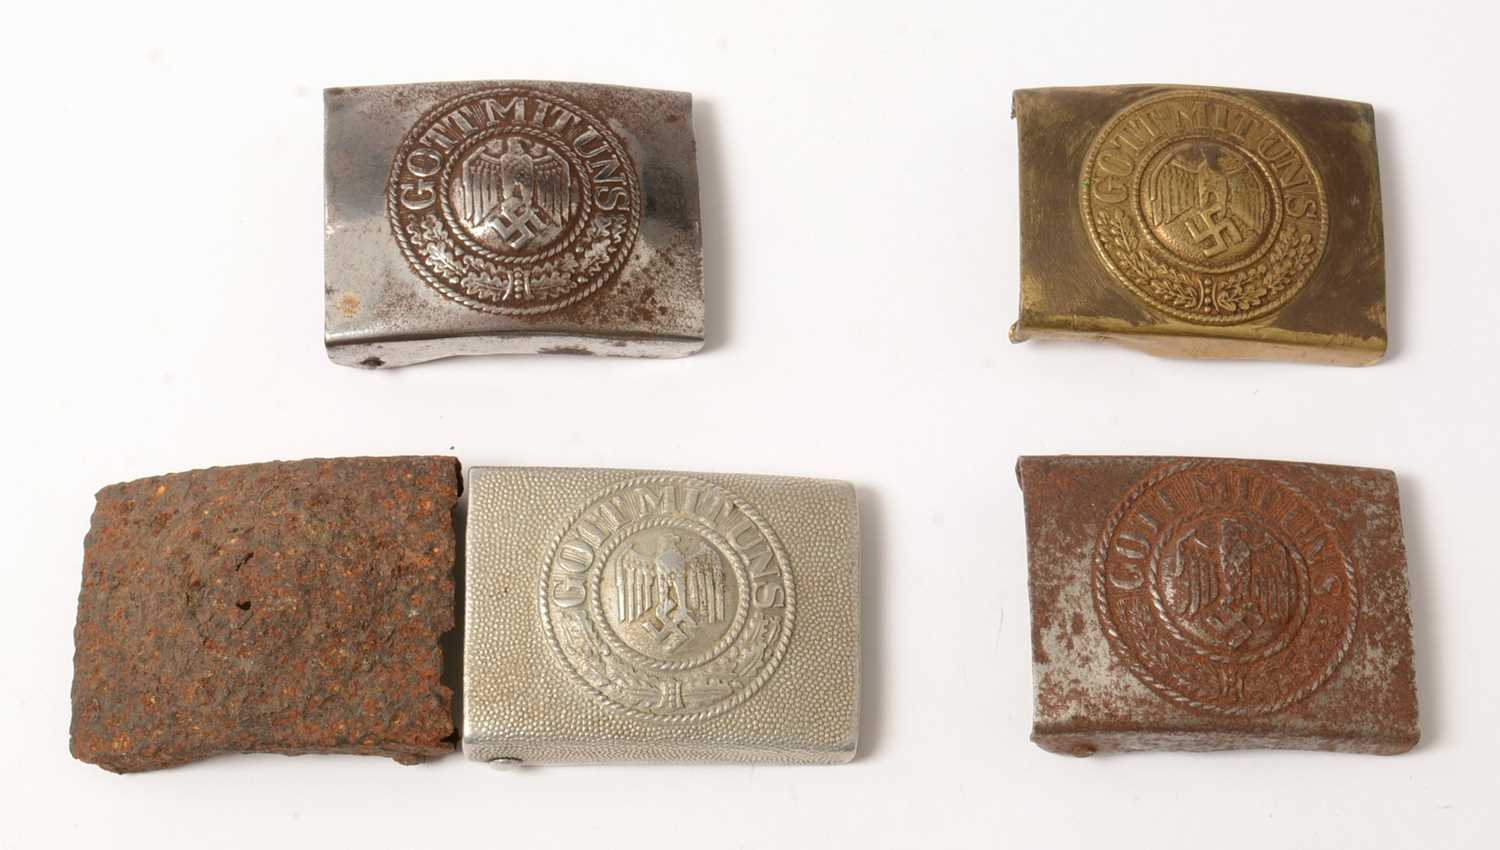 Lot 1044 - Collection of WWII and later German Heer belt buckles